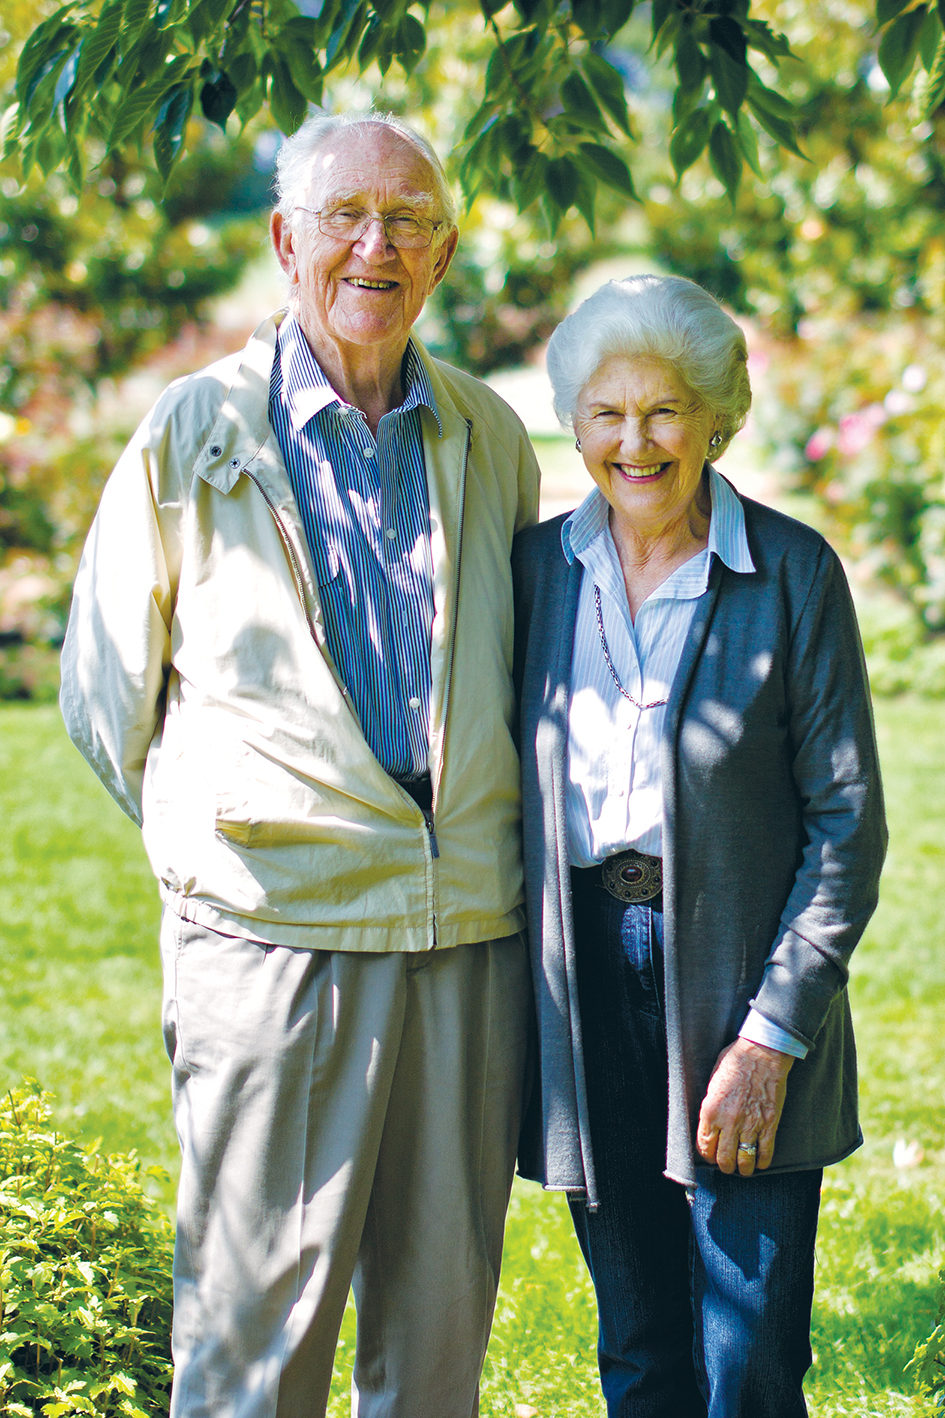 Garden lovers: Tamie and Malcolm Fraser at home at Merricks in 2013. Picture: Yanni